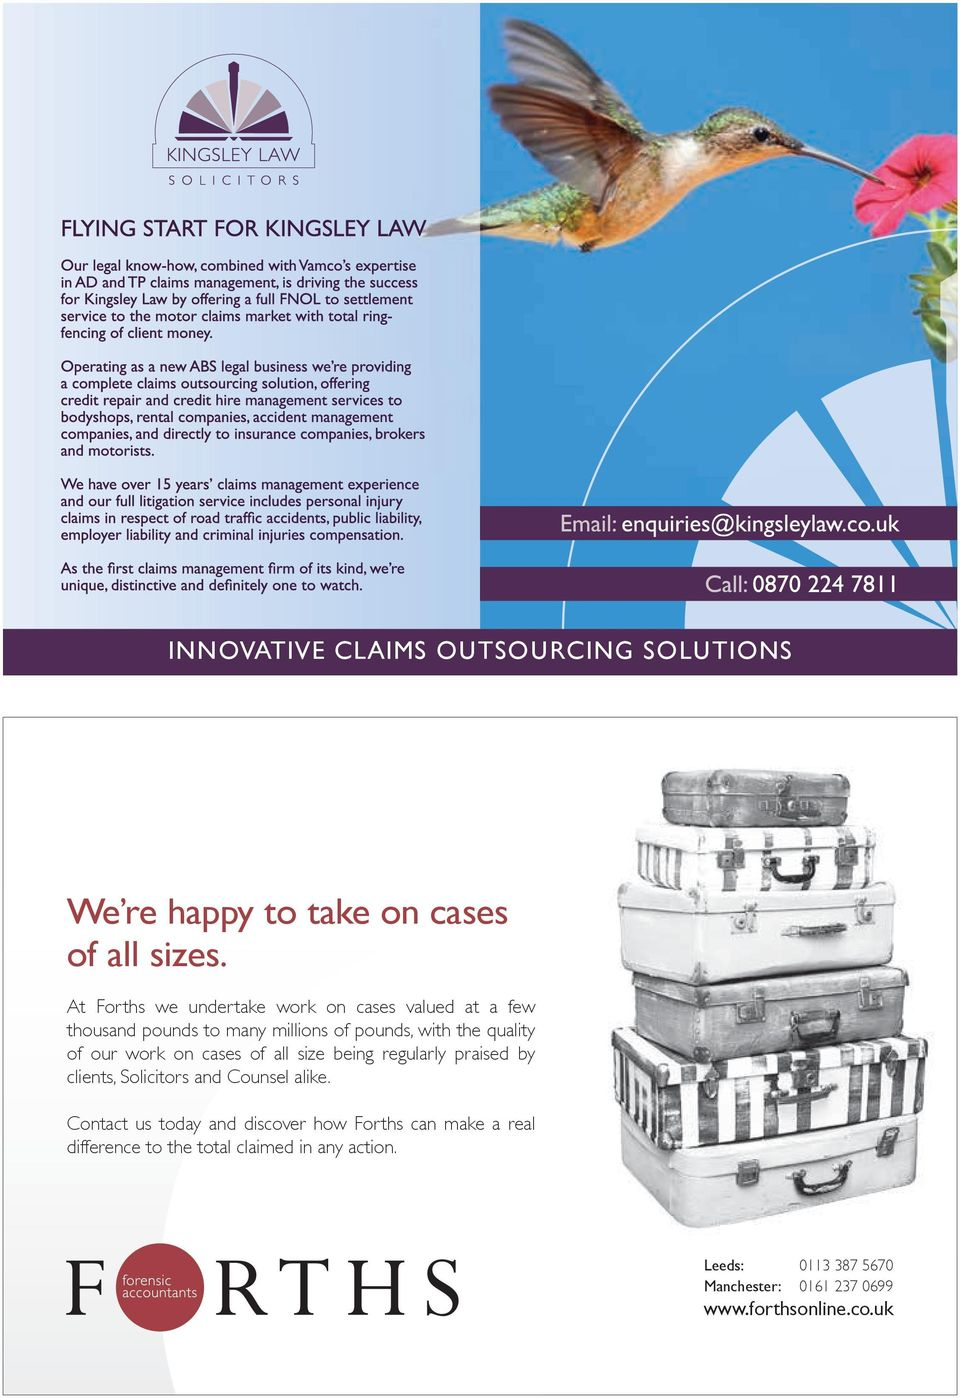 our work on cases of all size being regularly praised by clients, Solicitors and Counsel alike.